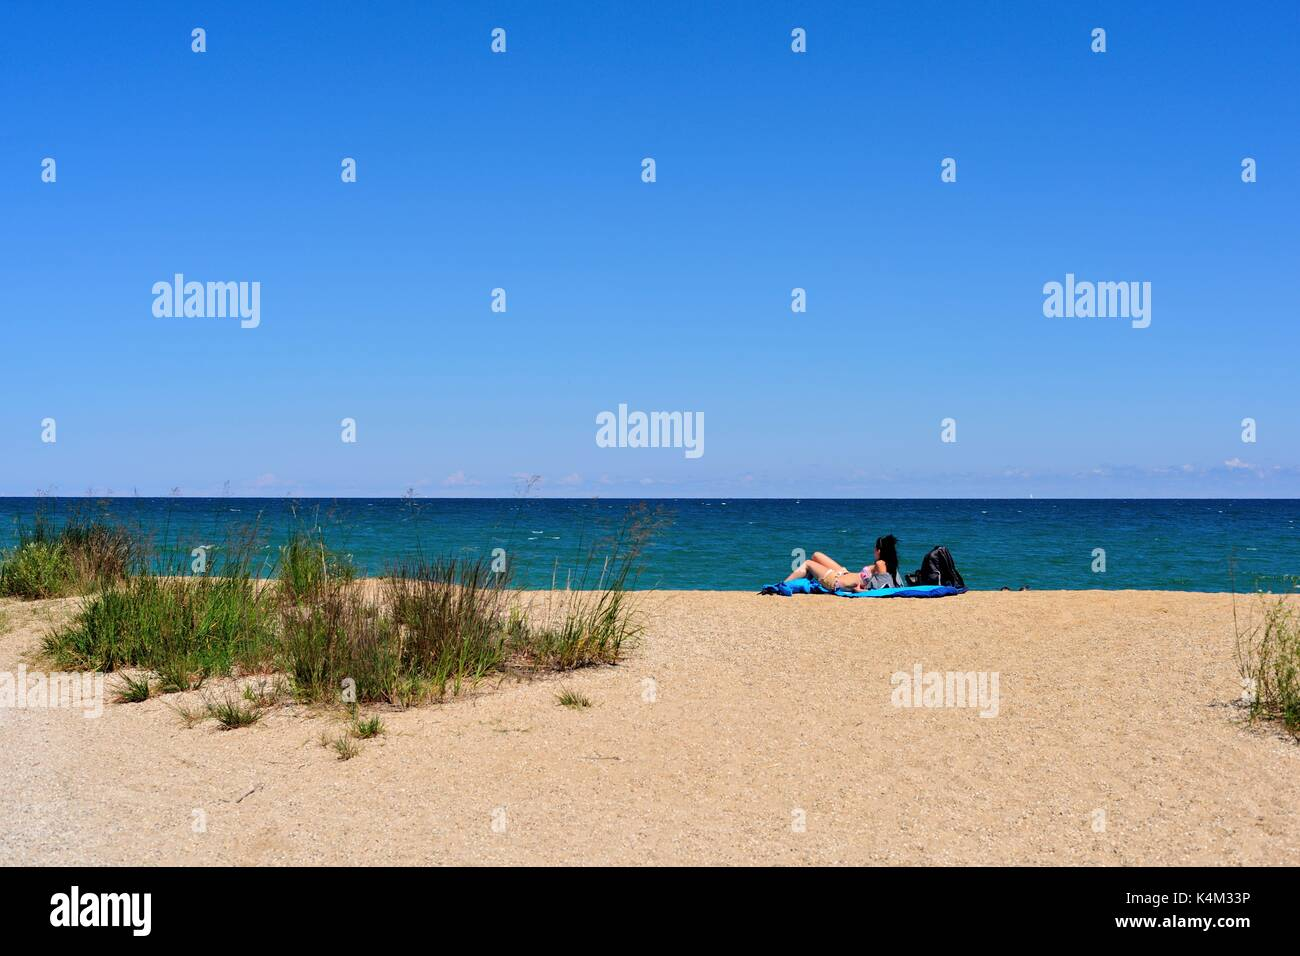 A lone woman relaxes in the sand among the dunes at Illinois Beach State Park at Zion, Illinois on the shore of Lake Michigan. USA. - Stock Image